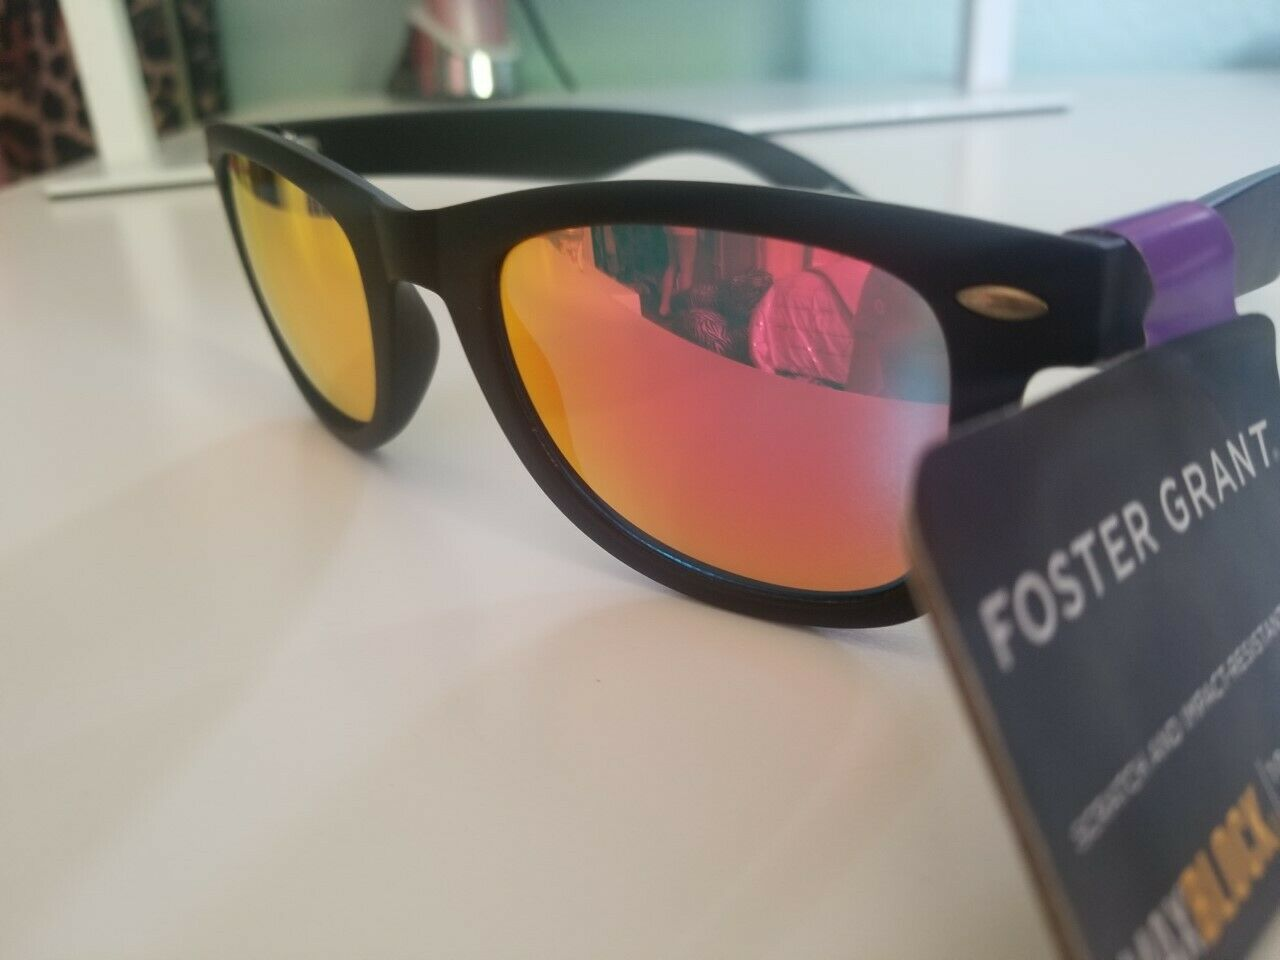 FOSTER GRANT SUNGLASSES PINK MIRRORED LENS BLACK RUBBERIZED FRAME 815286 NEW